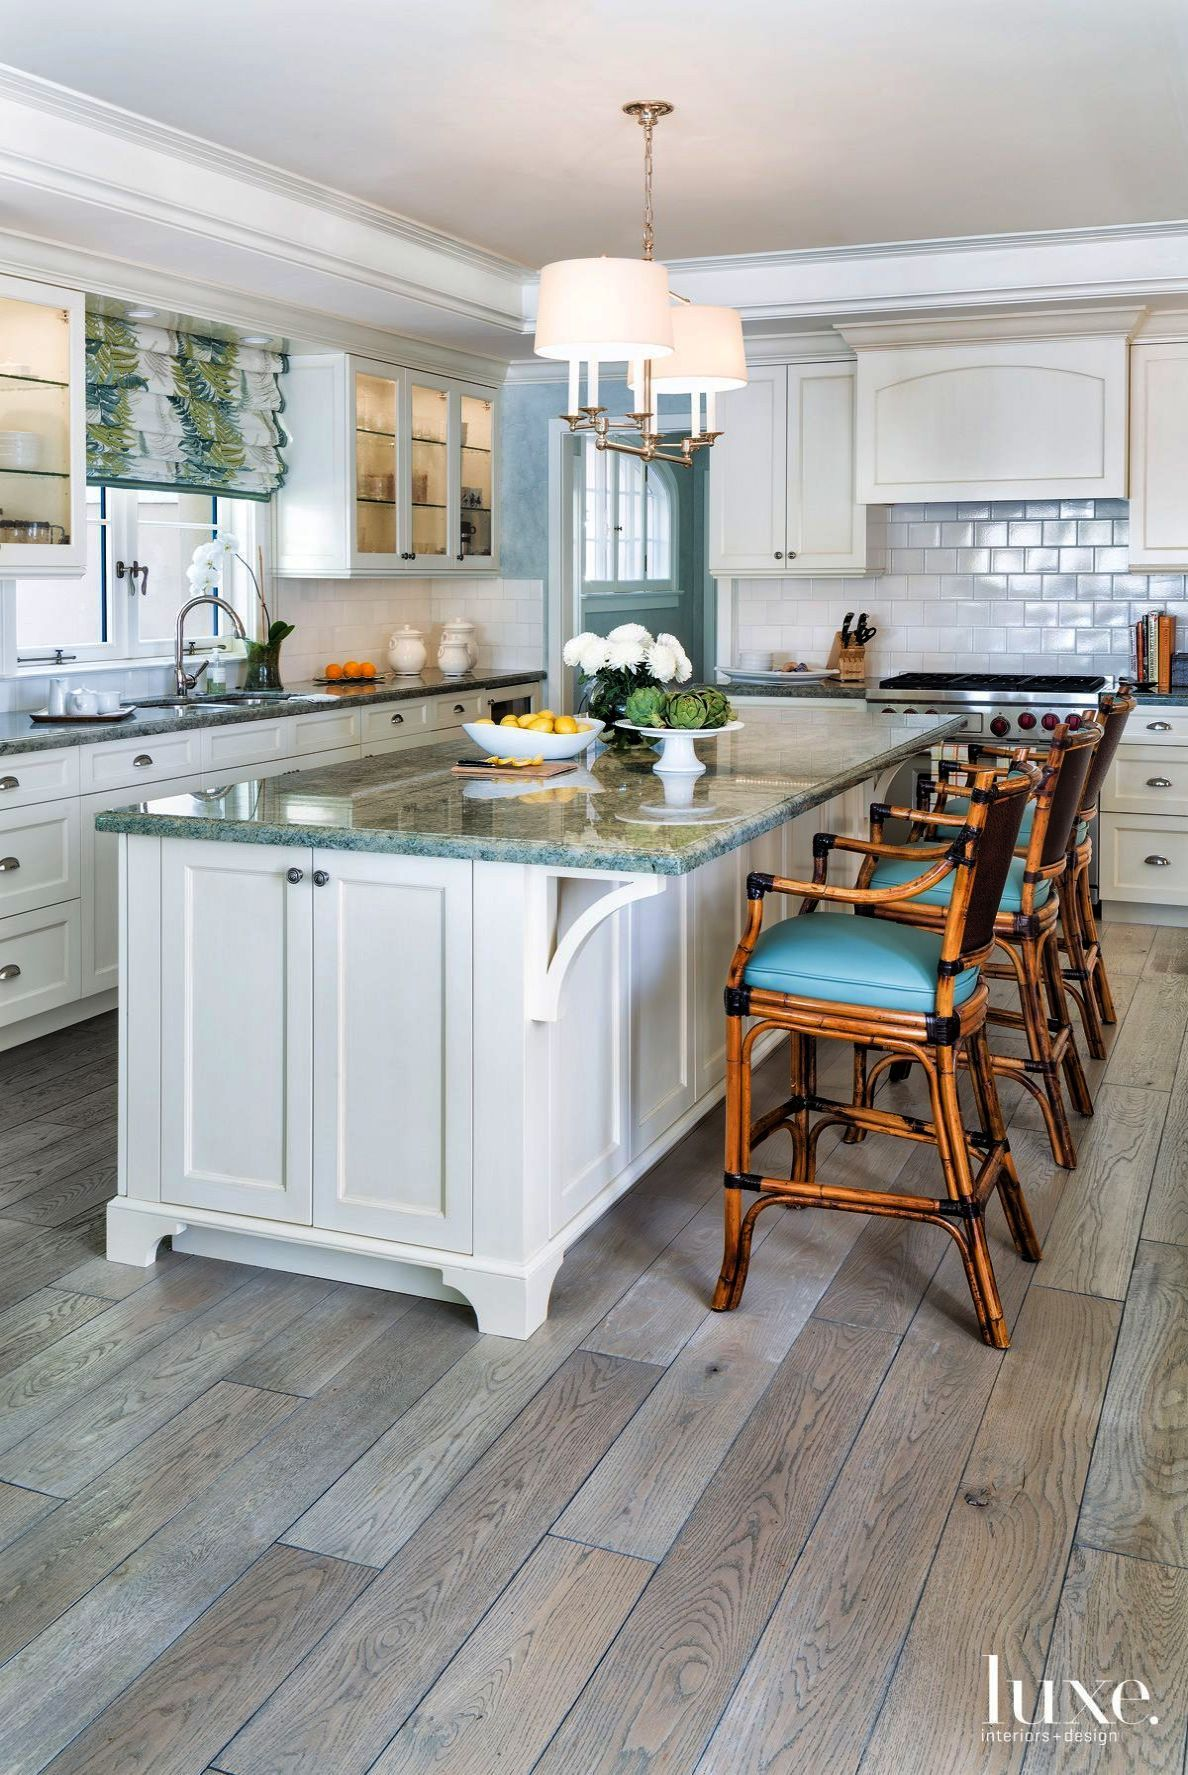 Beach house interior color schemes coastal style numbers also rh pinterest